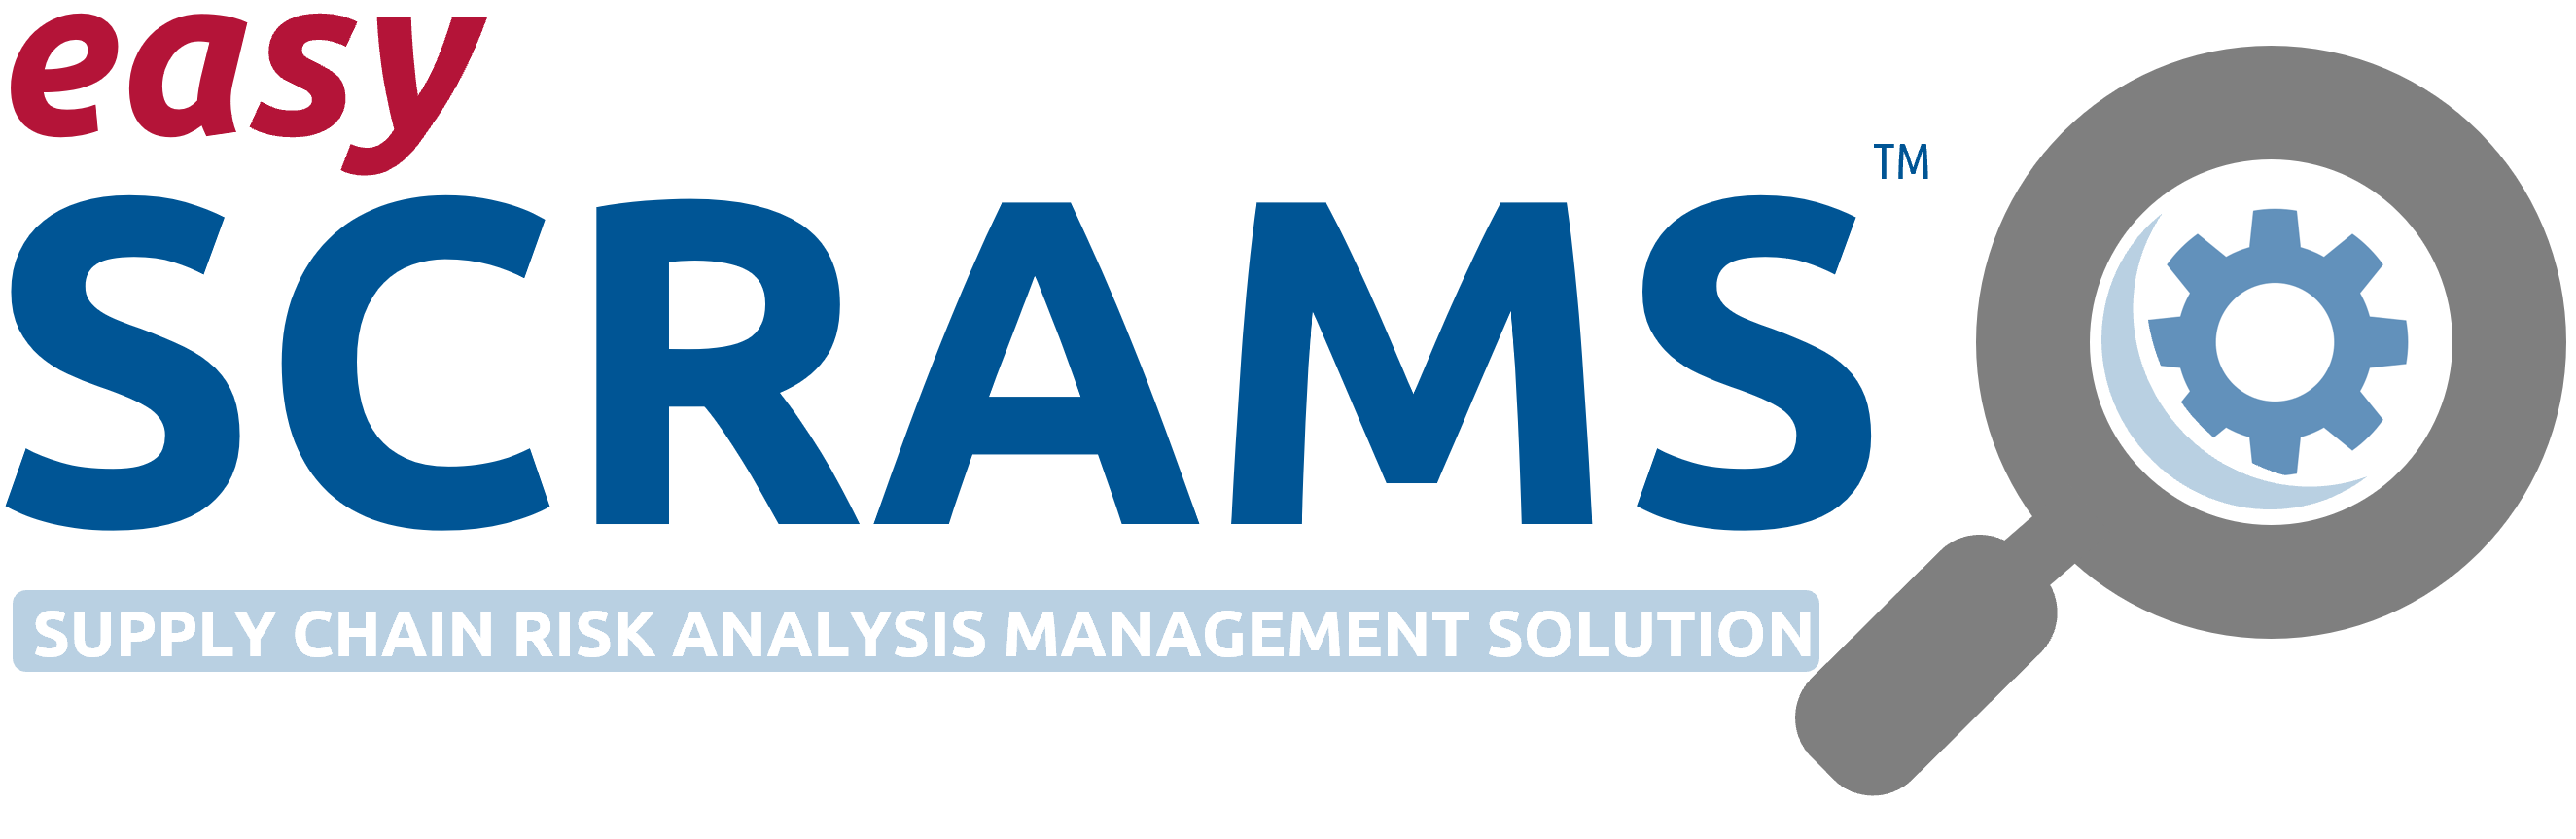 easy-SCRAMS login page - Supply Chain Risk Analysis Management System